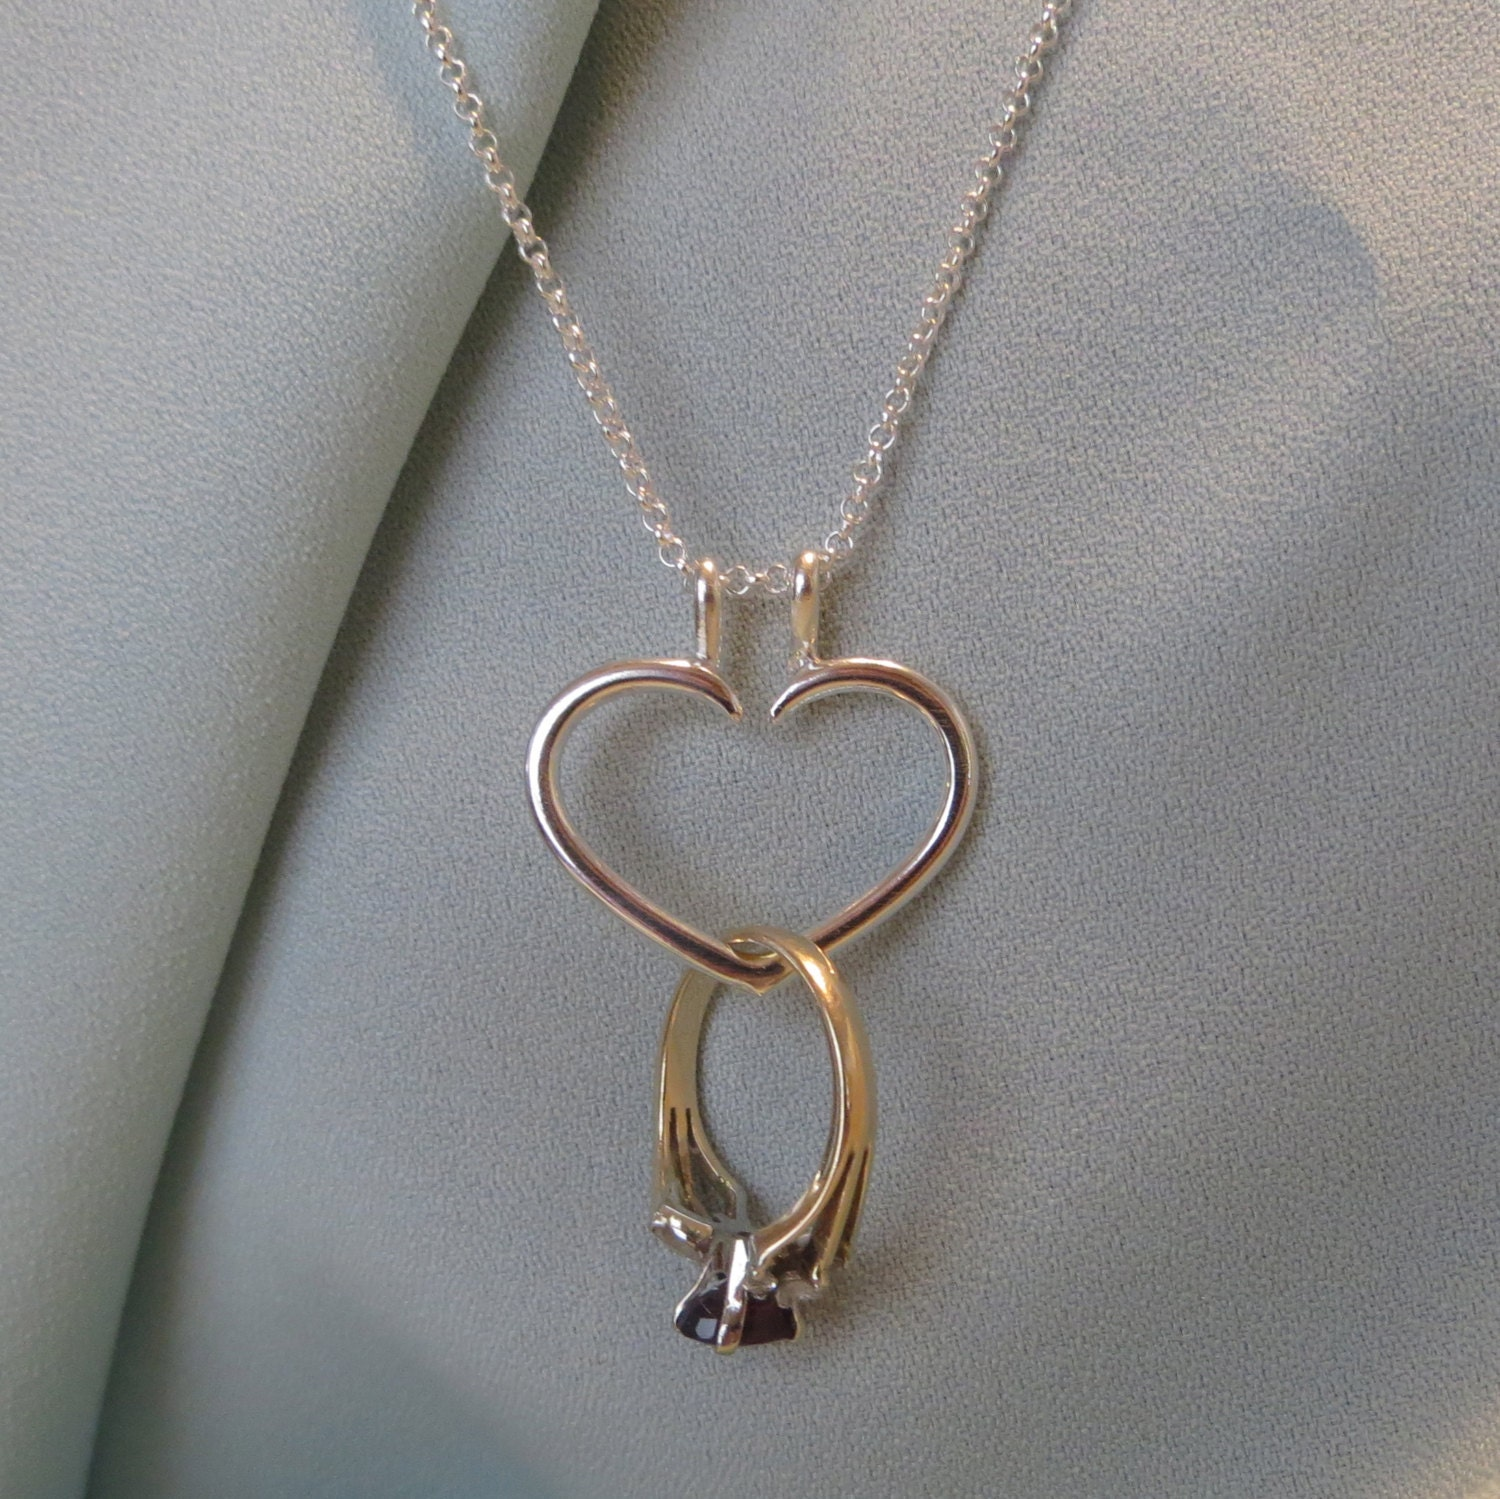 Heart engagement ring holder necklace charm pendant sterling for Wedding ring necklace